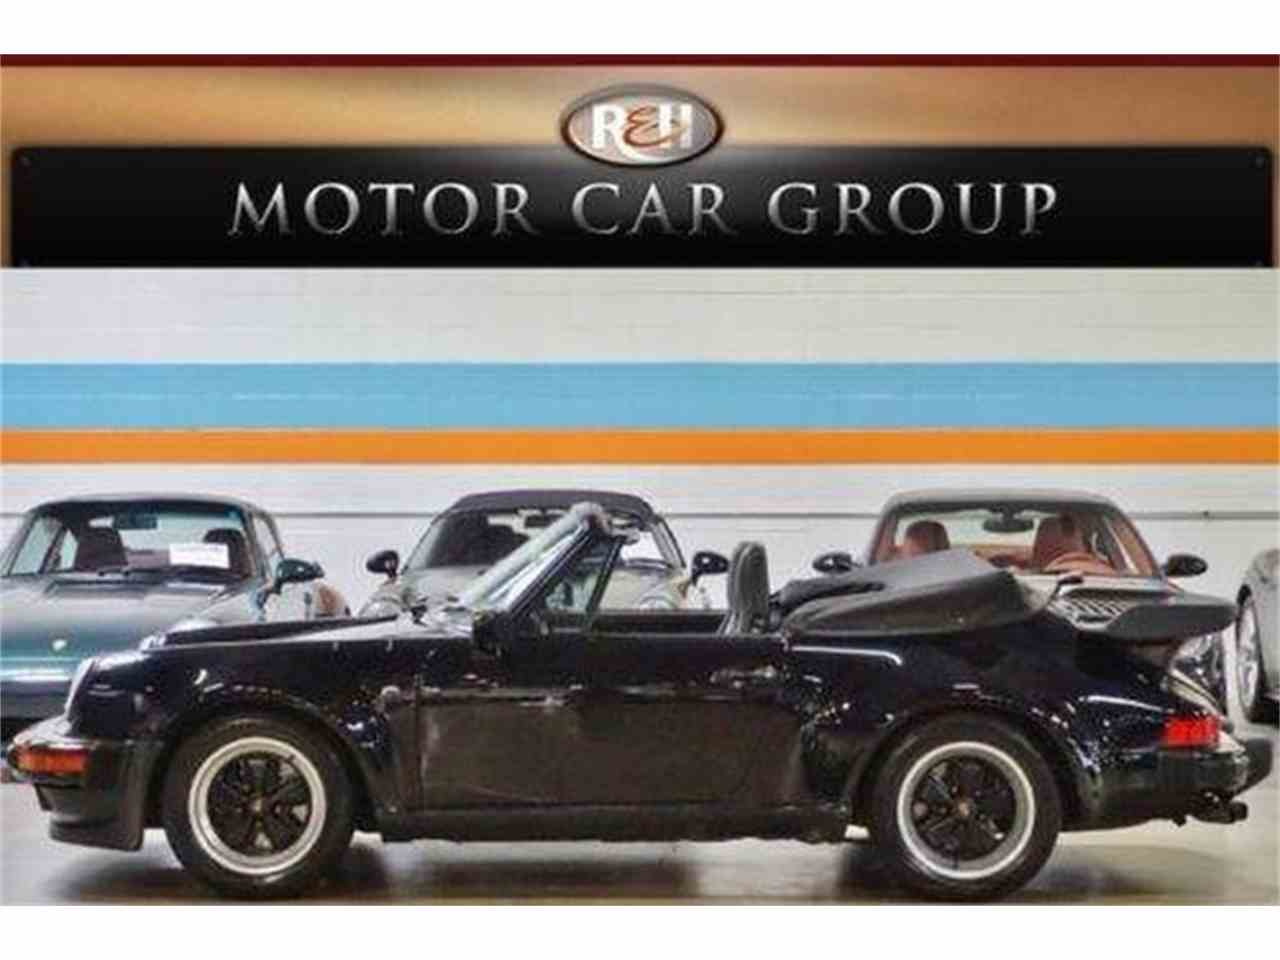 Large Picture of 1989 Porsche 911 Turbo - $144,990.00 Offered by R&H Motor Car Group - EVKF